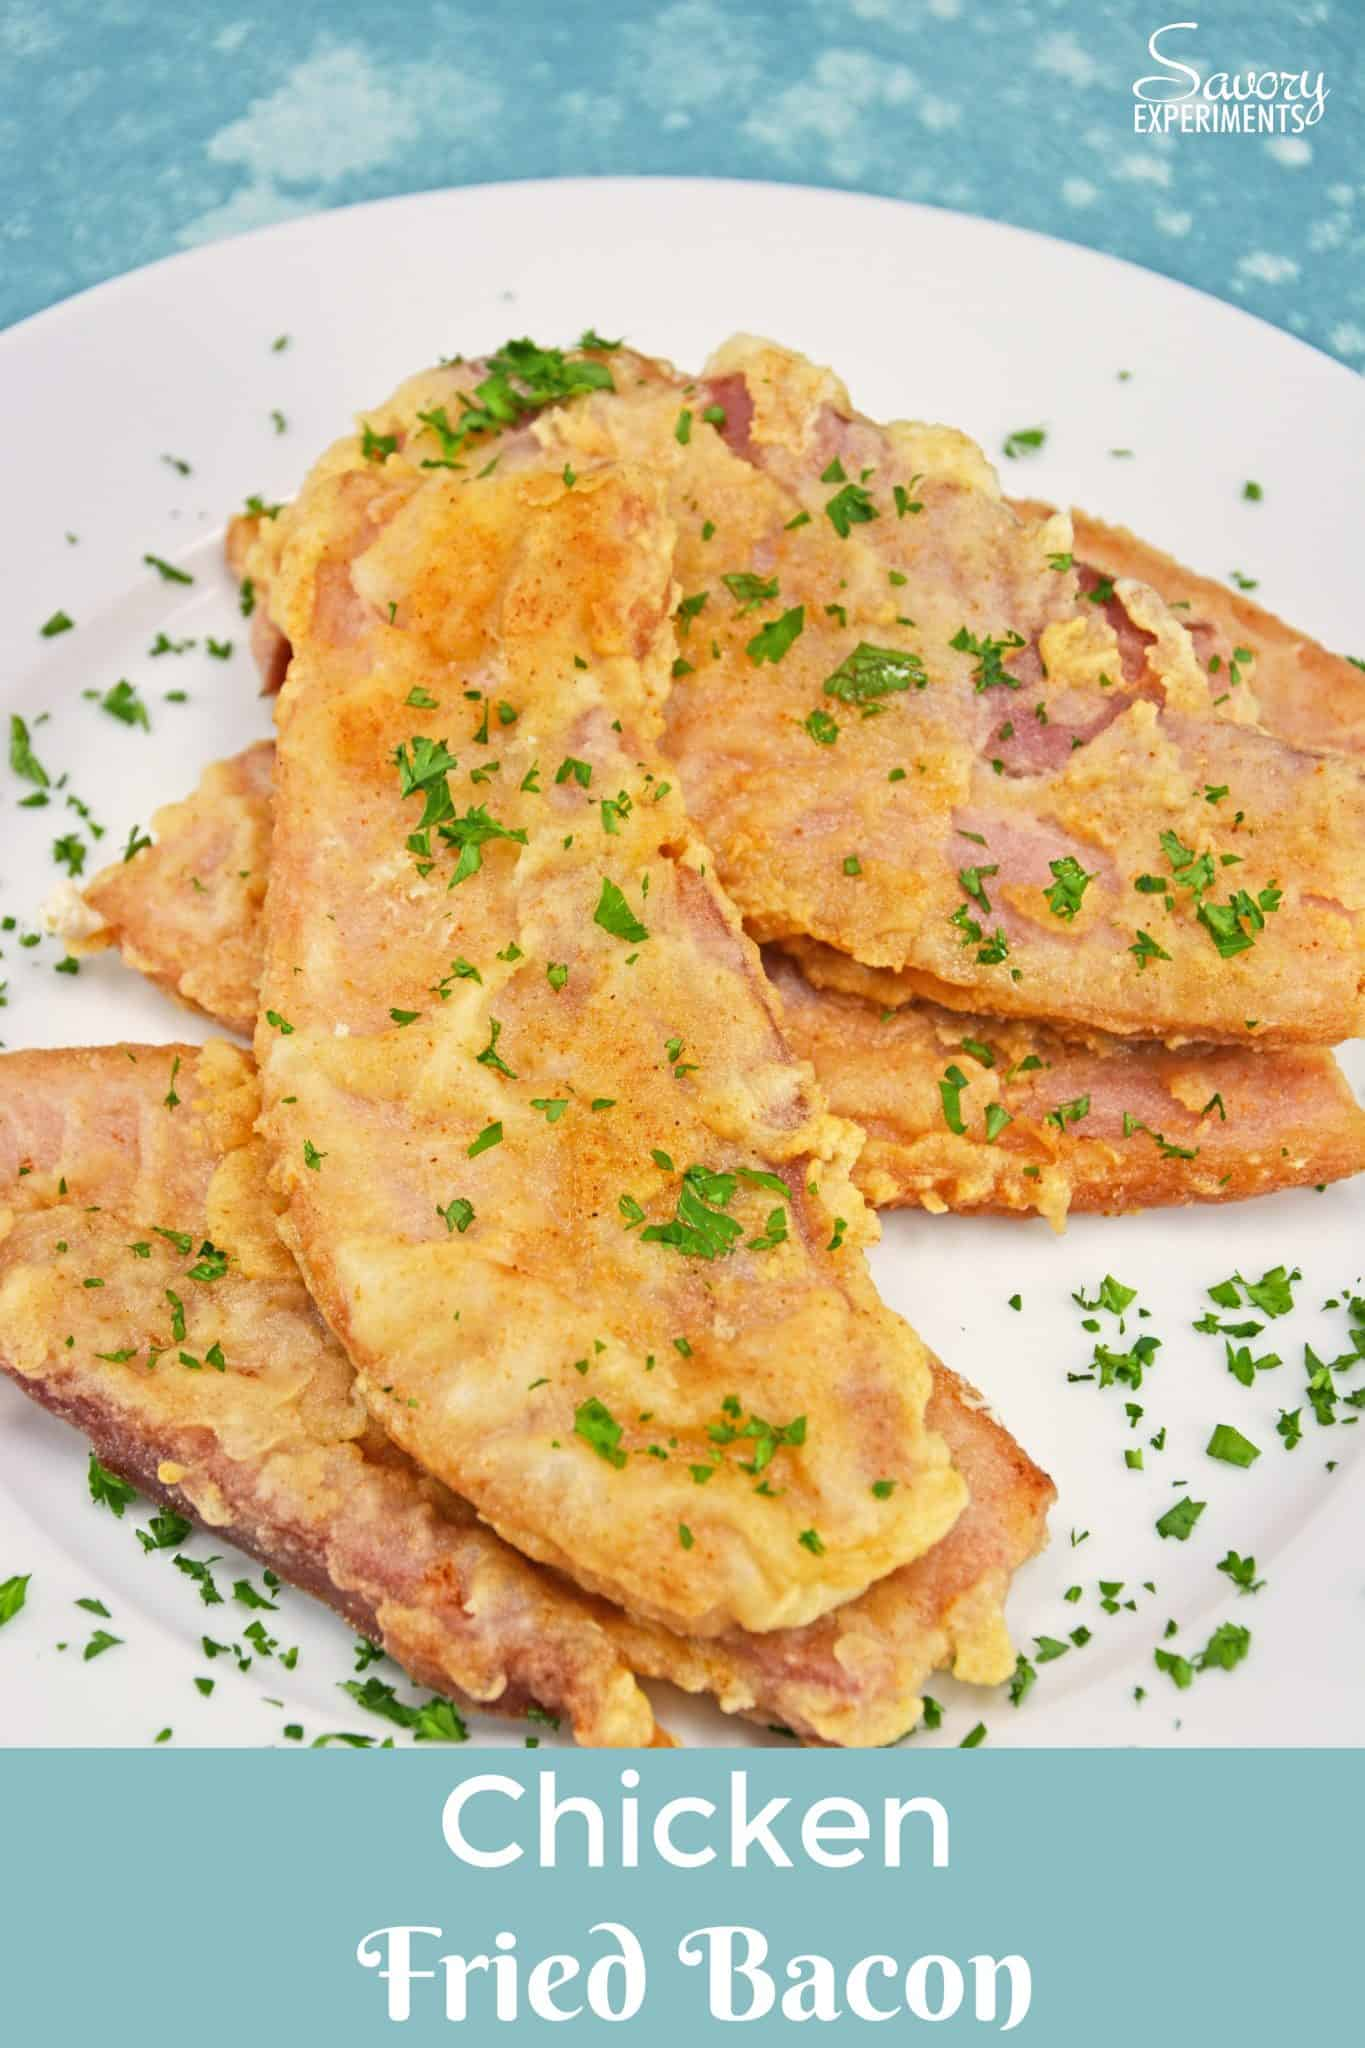 Chicken Fried Bacon is thick cut bacon dredged in seasoned flour, like chicken fried steak, and then fried to a golden brown and served with Cream Gravy.